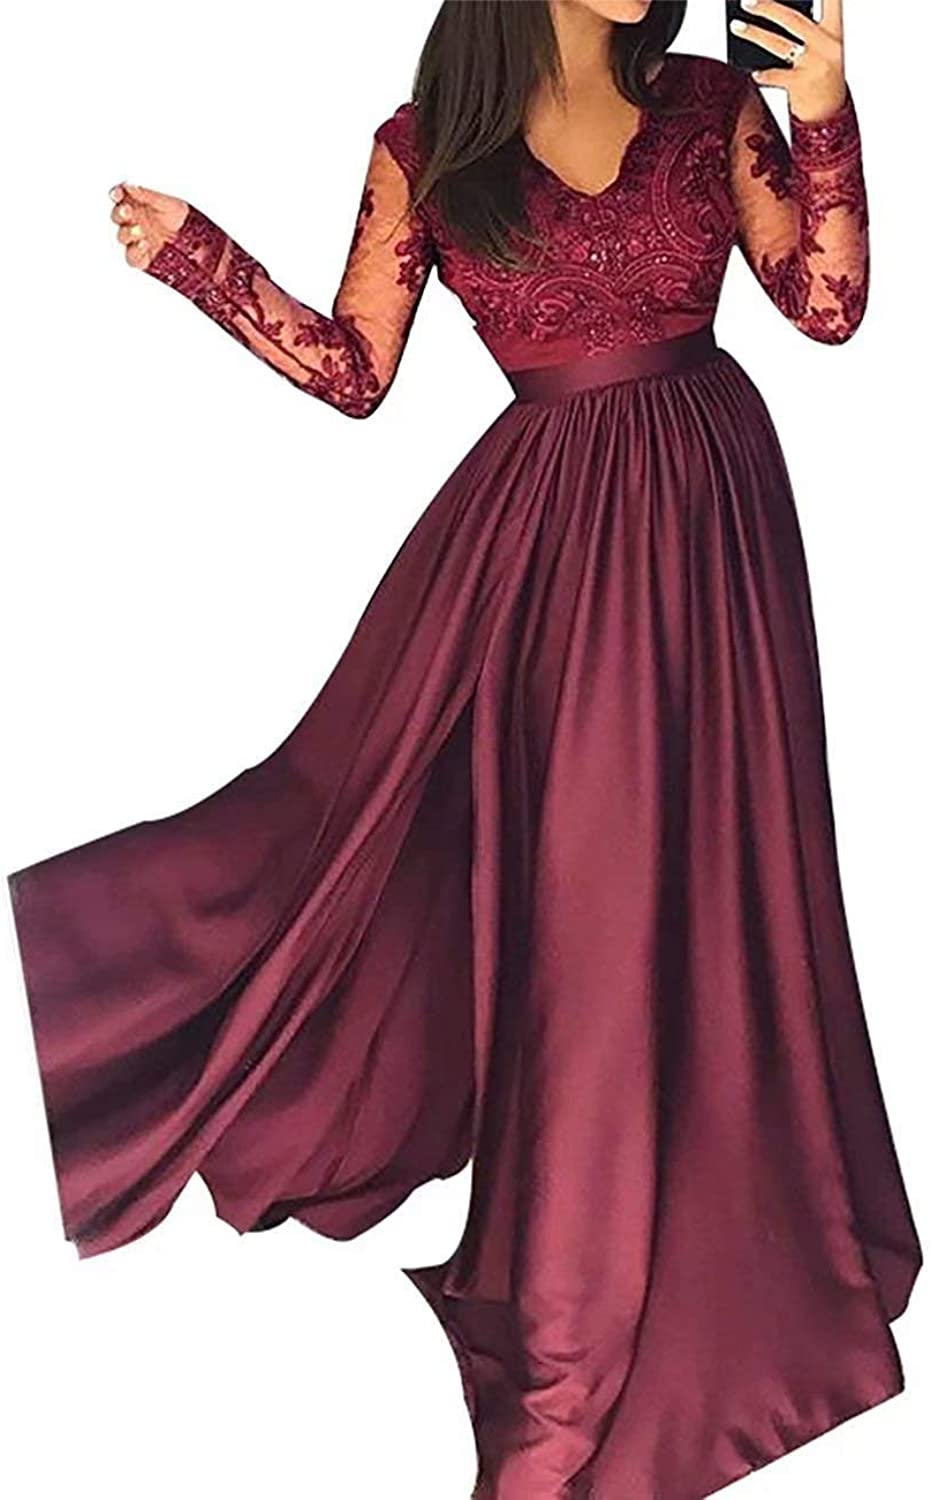 Ubride 2109 Women's Long Lace Illusion Sleeves V Neck Evening Formal Prom Dress with Split